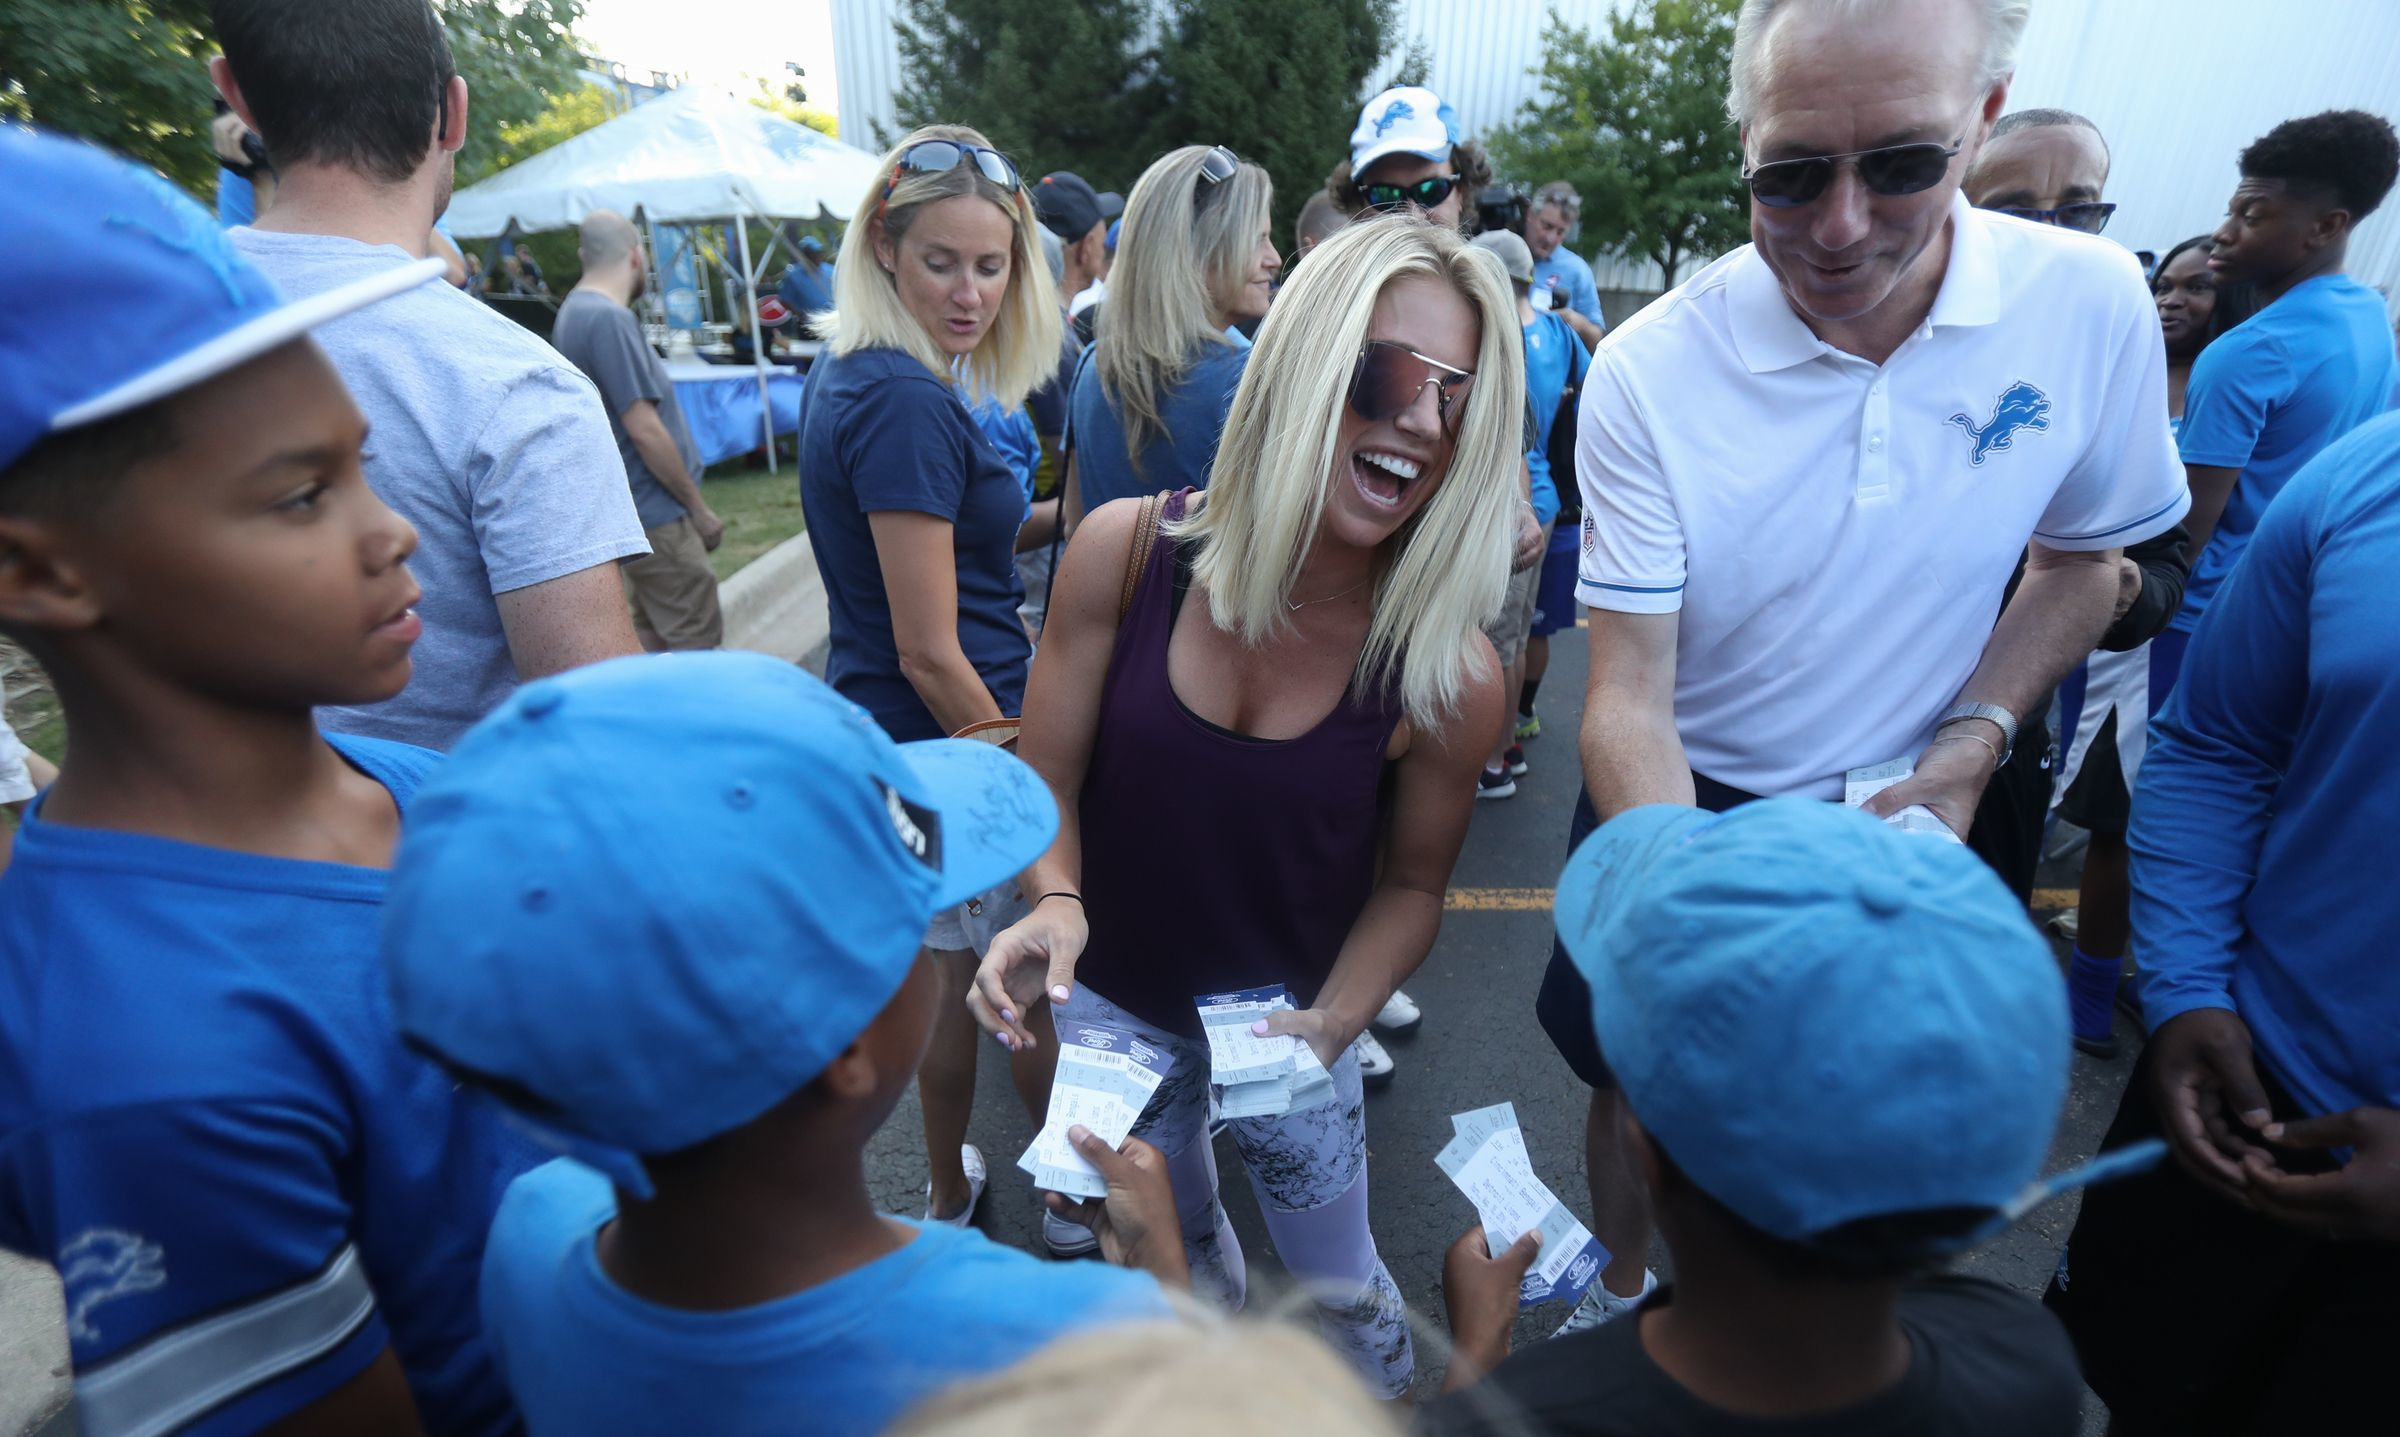 Kelly Stafford, wife of Lions quarterback Matthew Stafford, and Lions president Rod Wood hand out tickets to a preseason game in Allen Park.